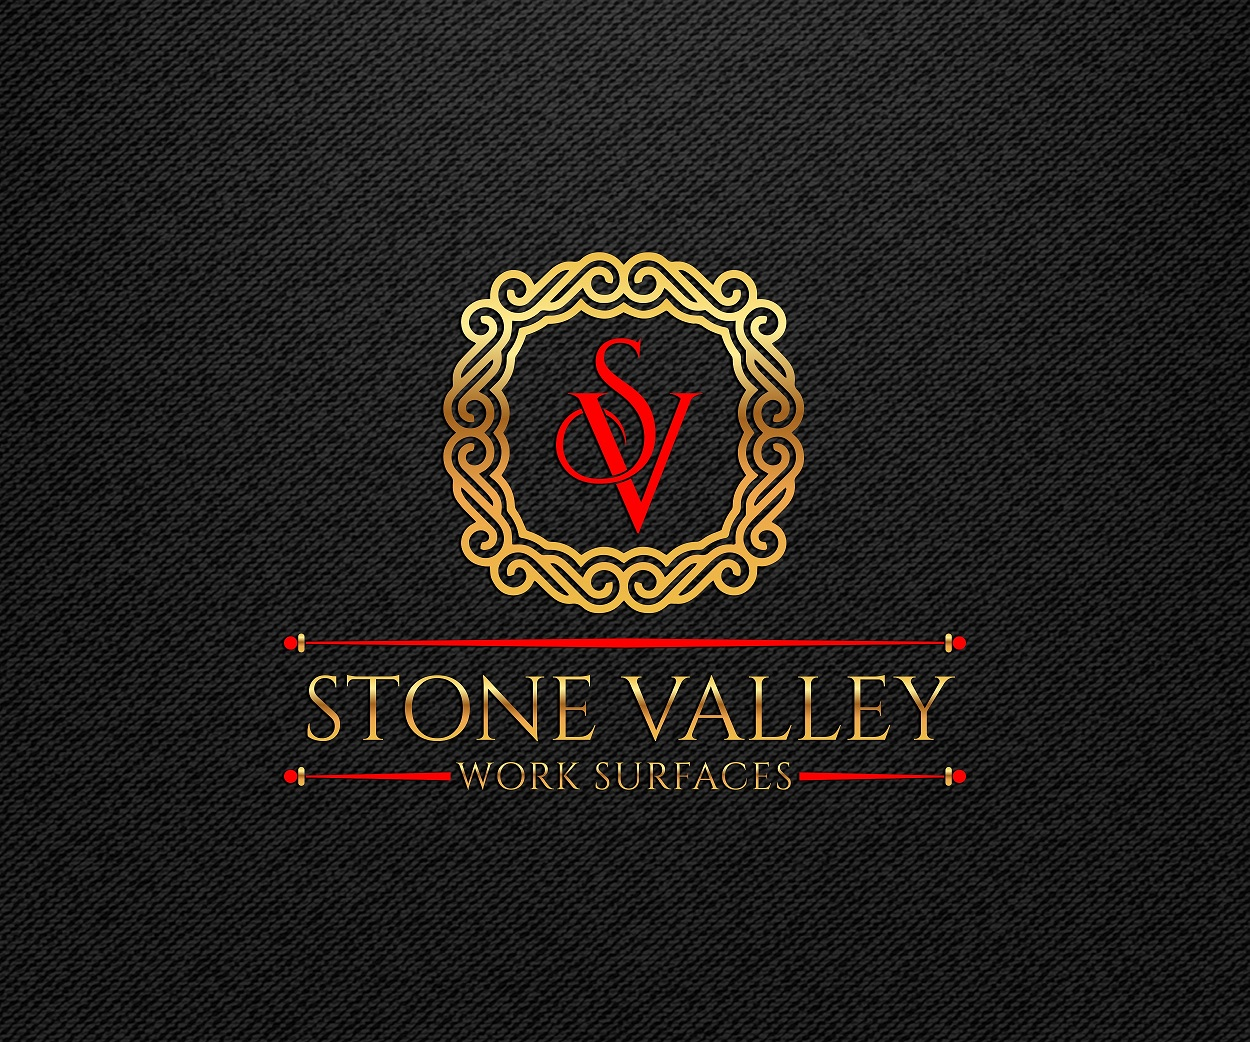 Stone Valley Work Surfaces